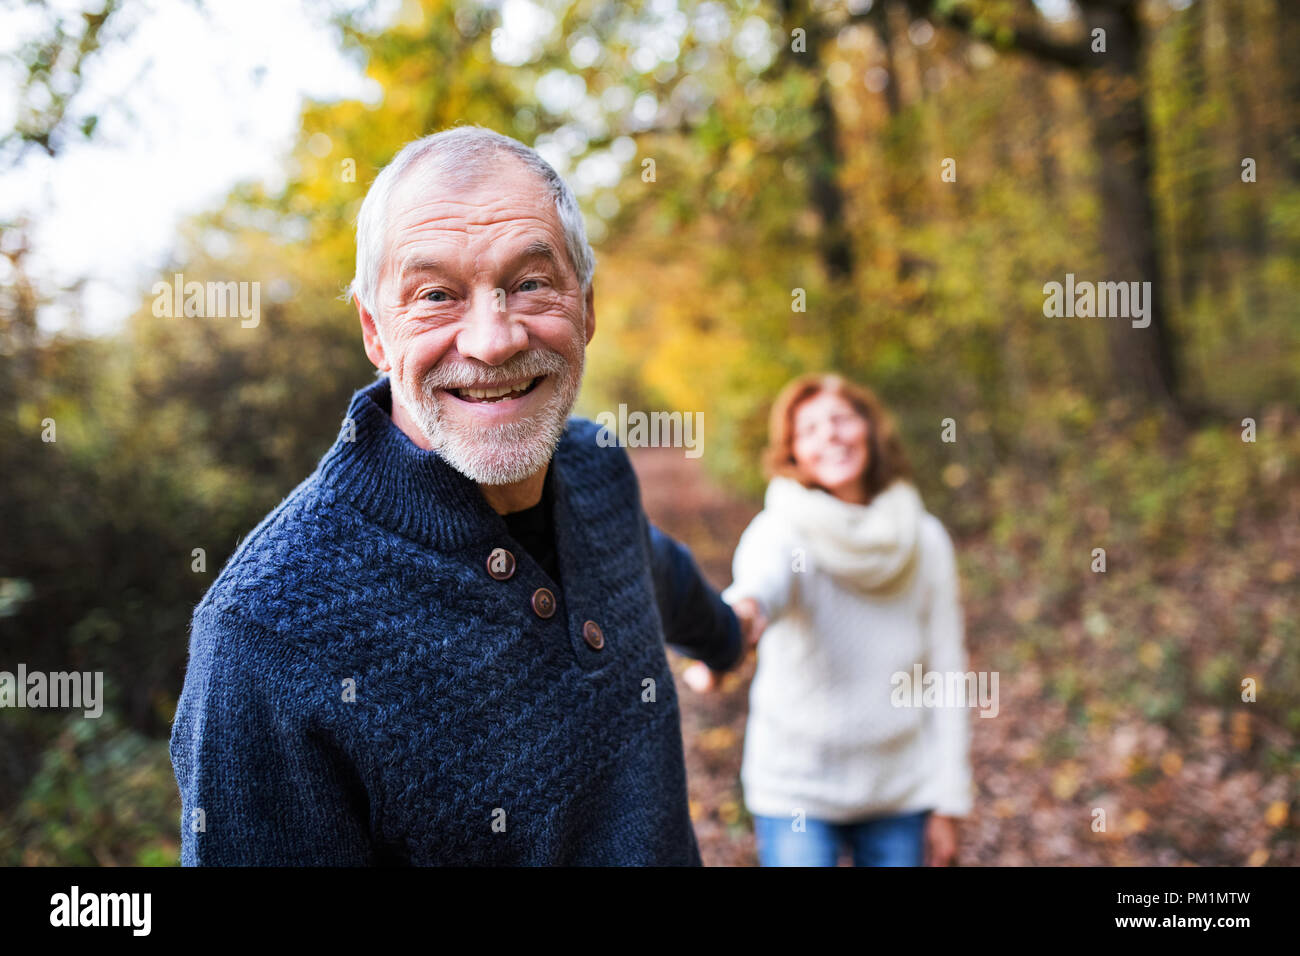 A portrait of a senior couple walking in an autumn nature. - Stock Image